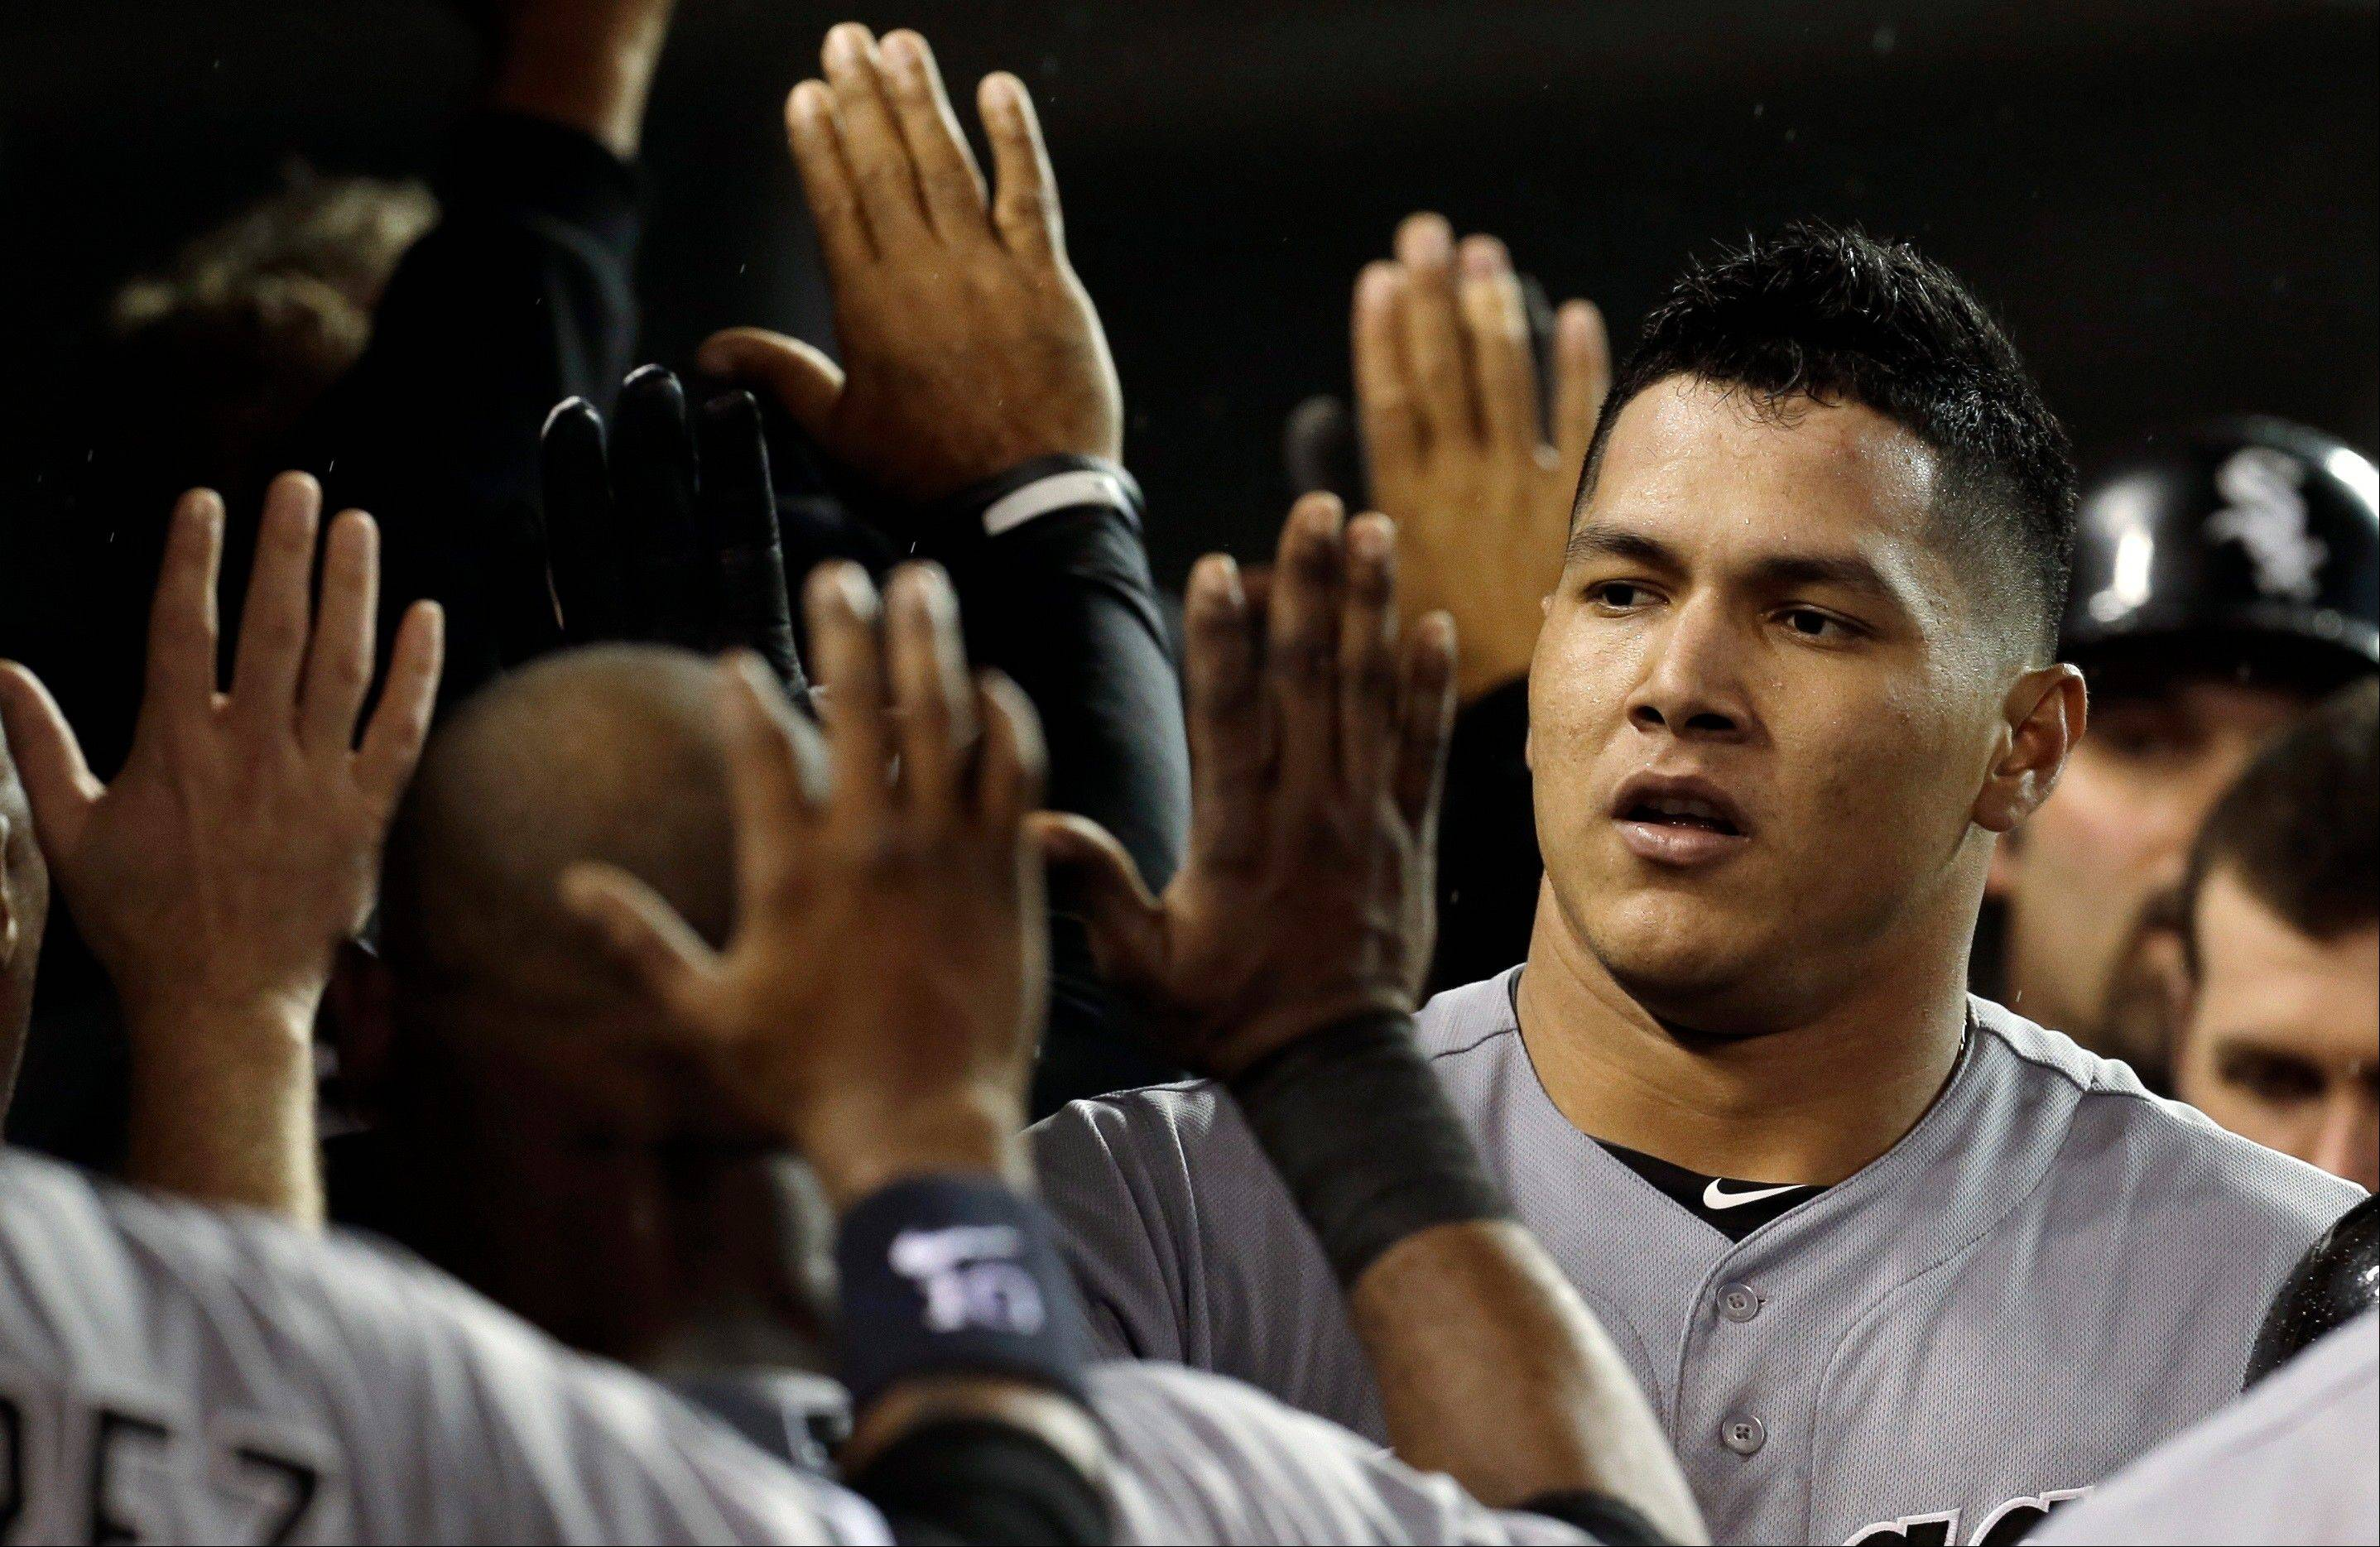 Chicago White Sox's Avisail Garcia celebrates his two-run home run against the Detroit Tigers in the fourth inning of a baseball game in Detroit, Friday, Sept. 20, 2013. (AP Photo/Paul Sancya)